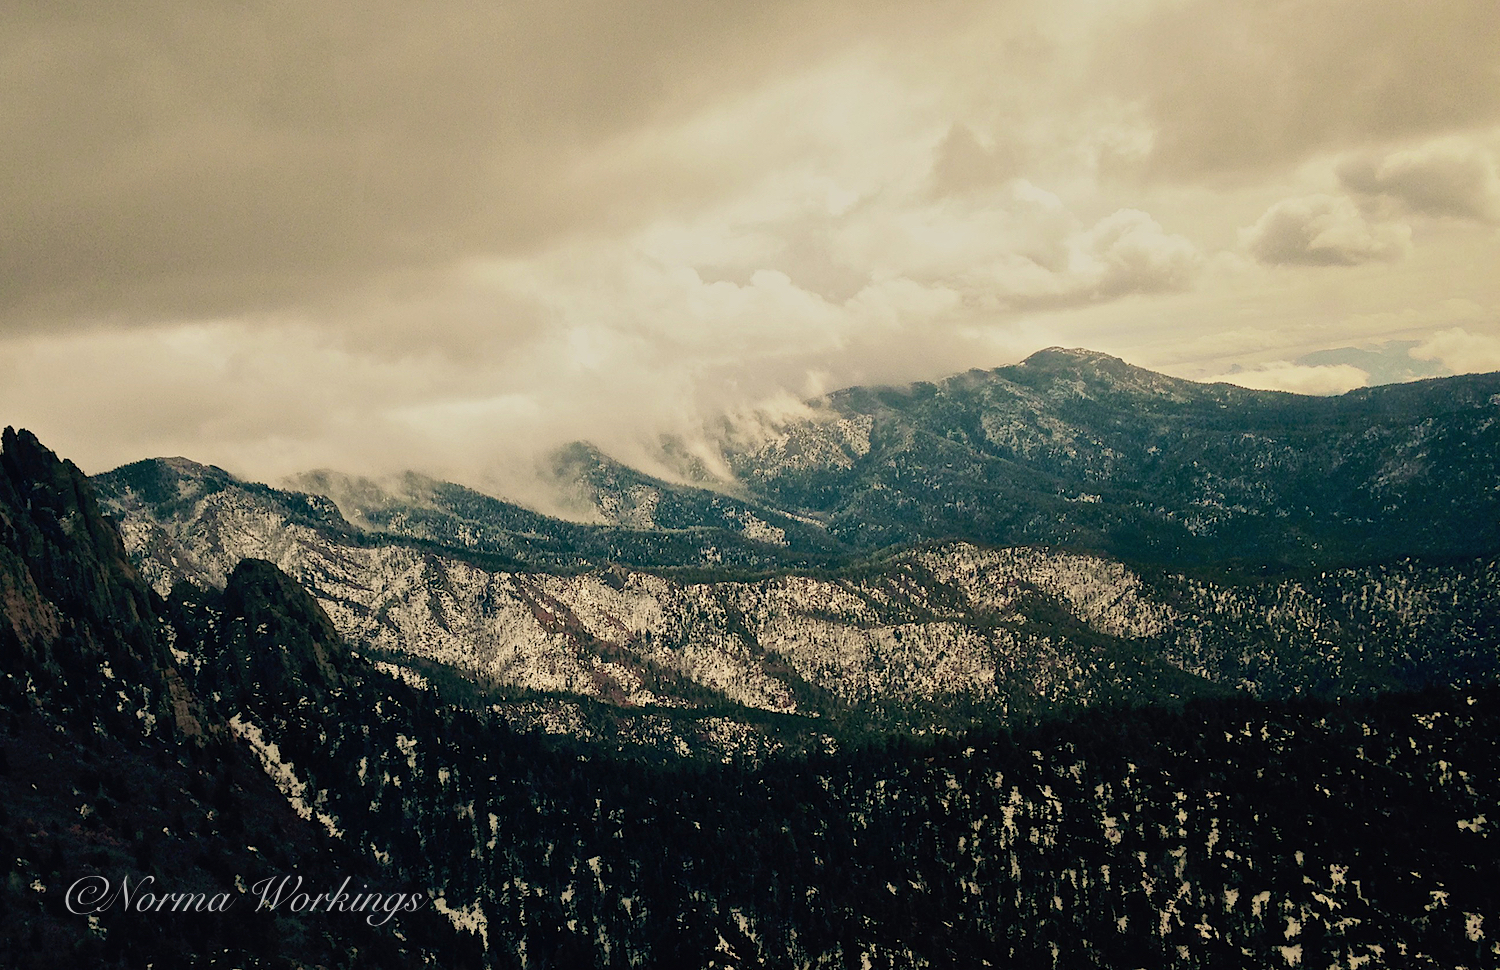 We both loved how the clouds were drifting down the canyons of the mountain.